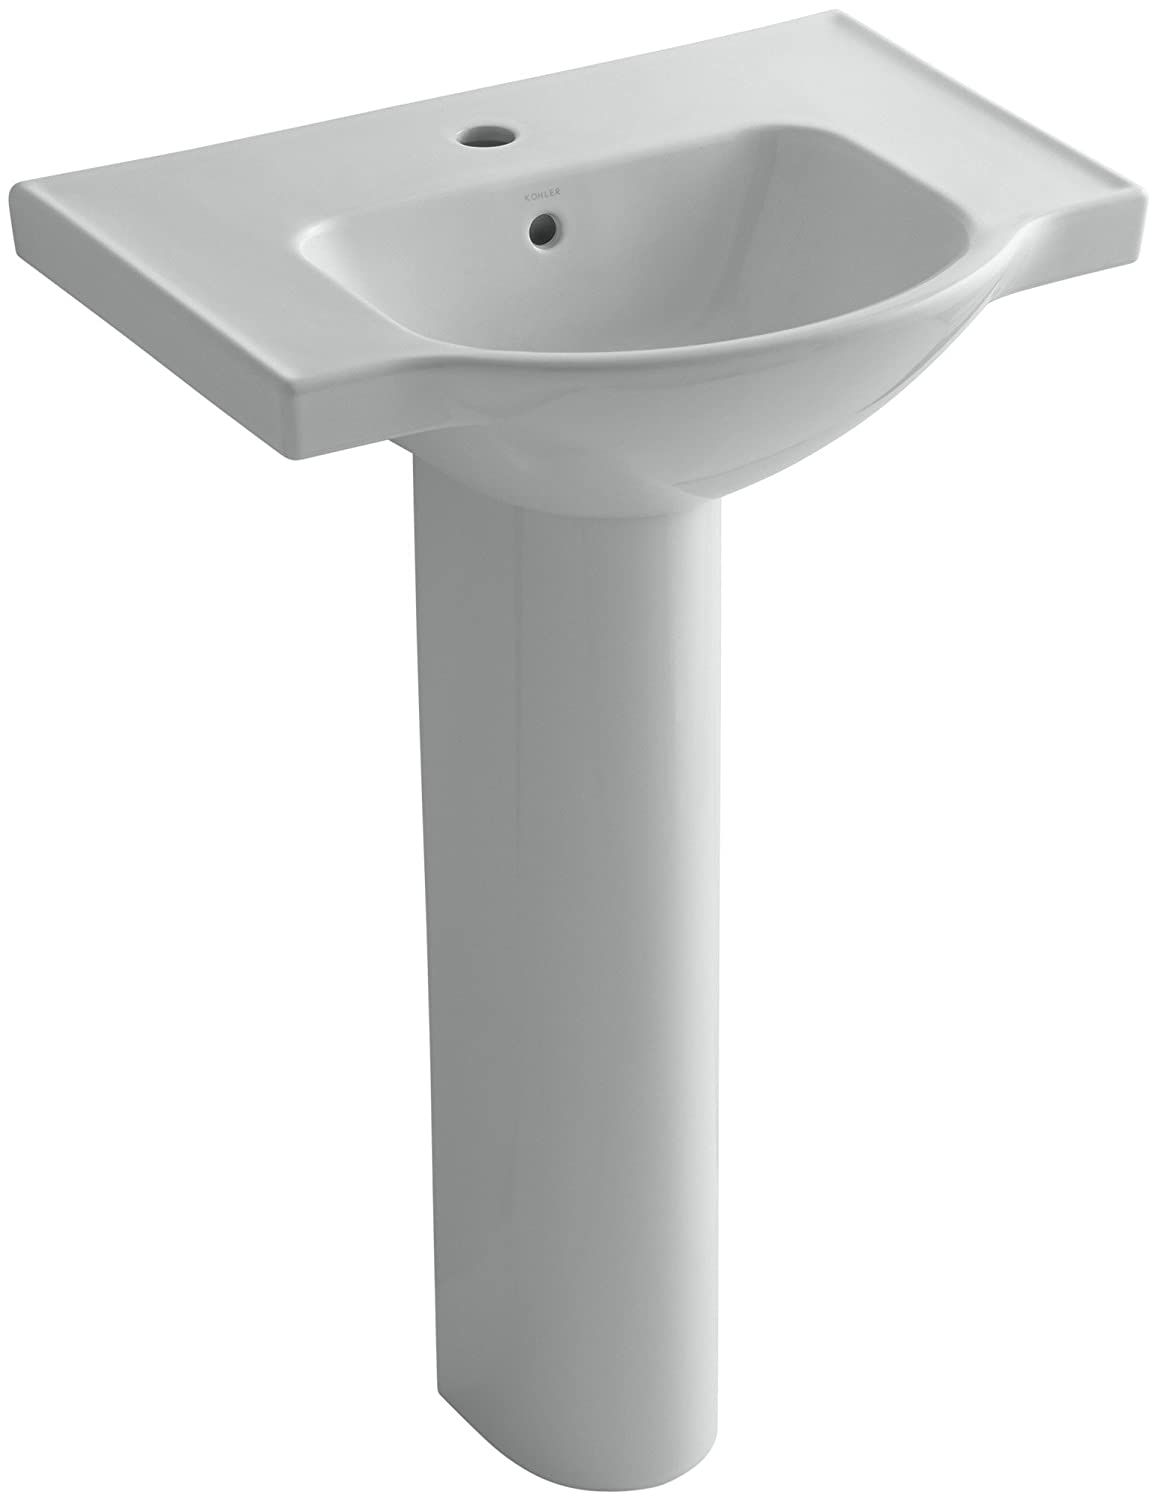 kohler k 5266 1 0 veer pedestal bathroom sink with single faucet hole 24 inch white amazoncom